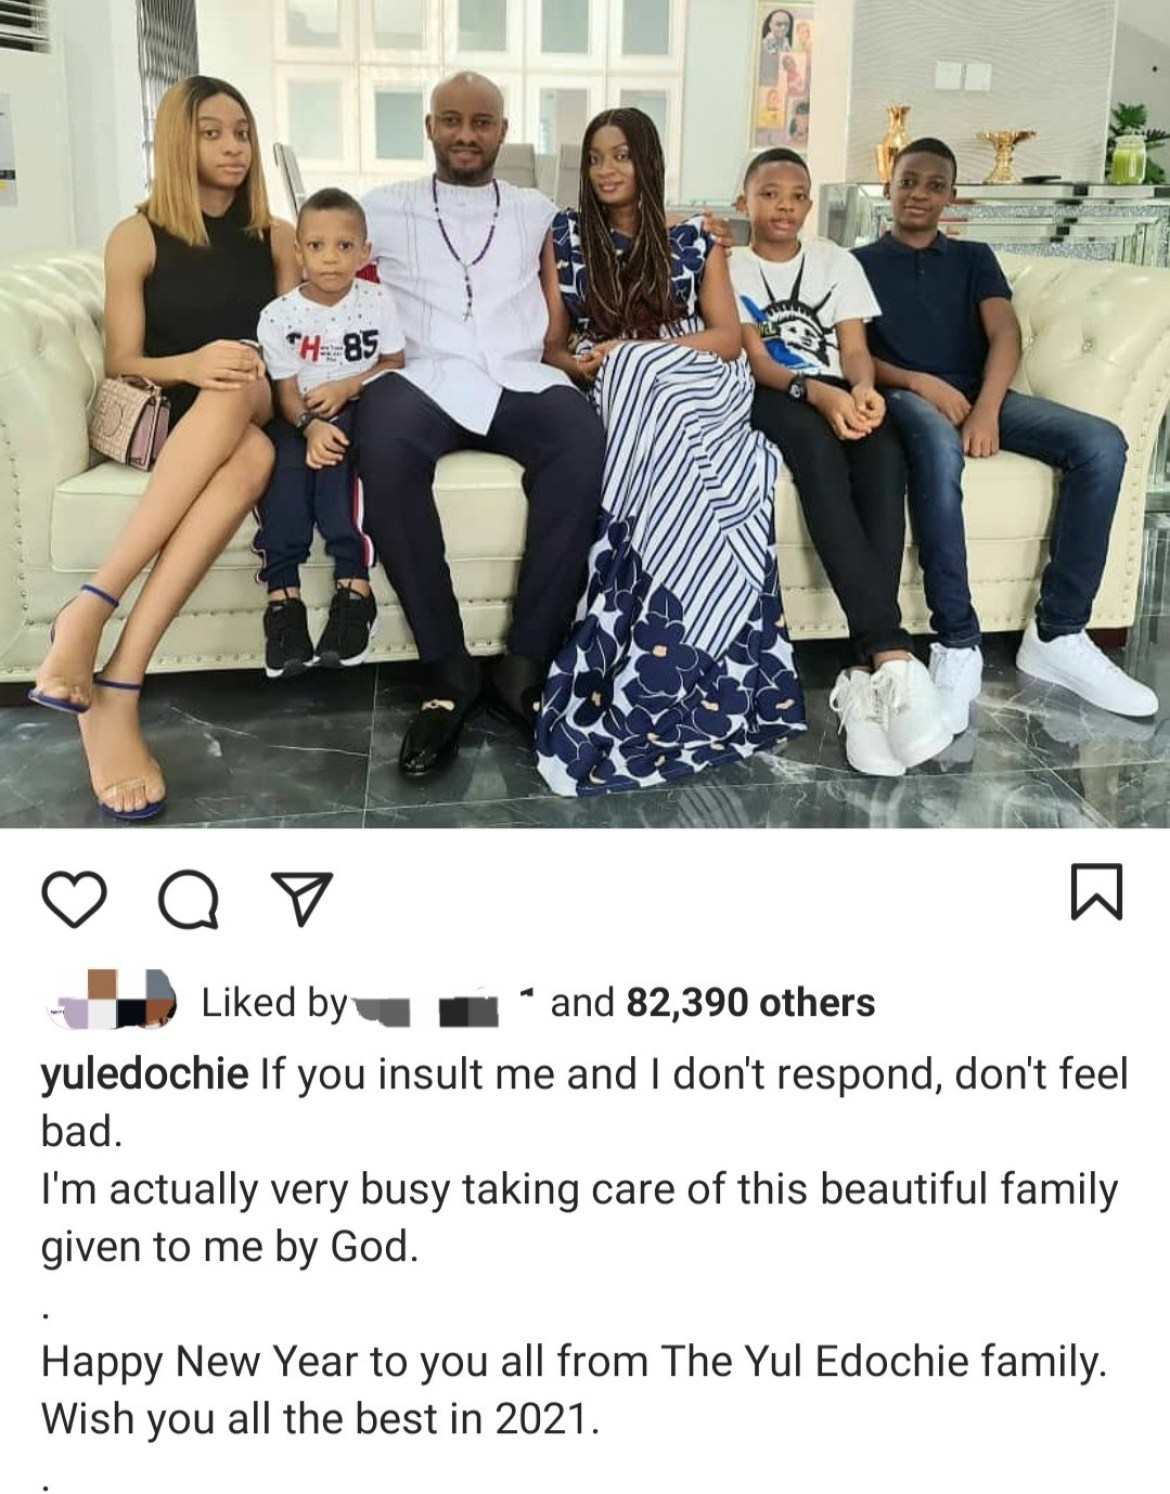 Yul Edochie shows off his family and explains they are the reason he has no time for trolls